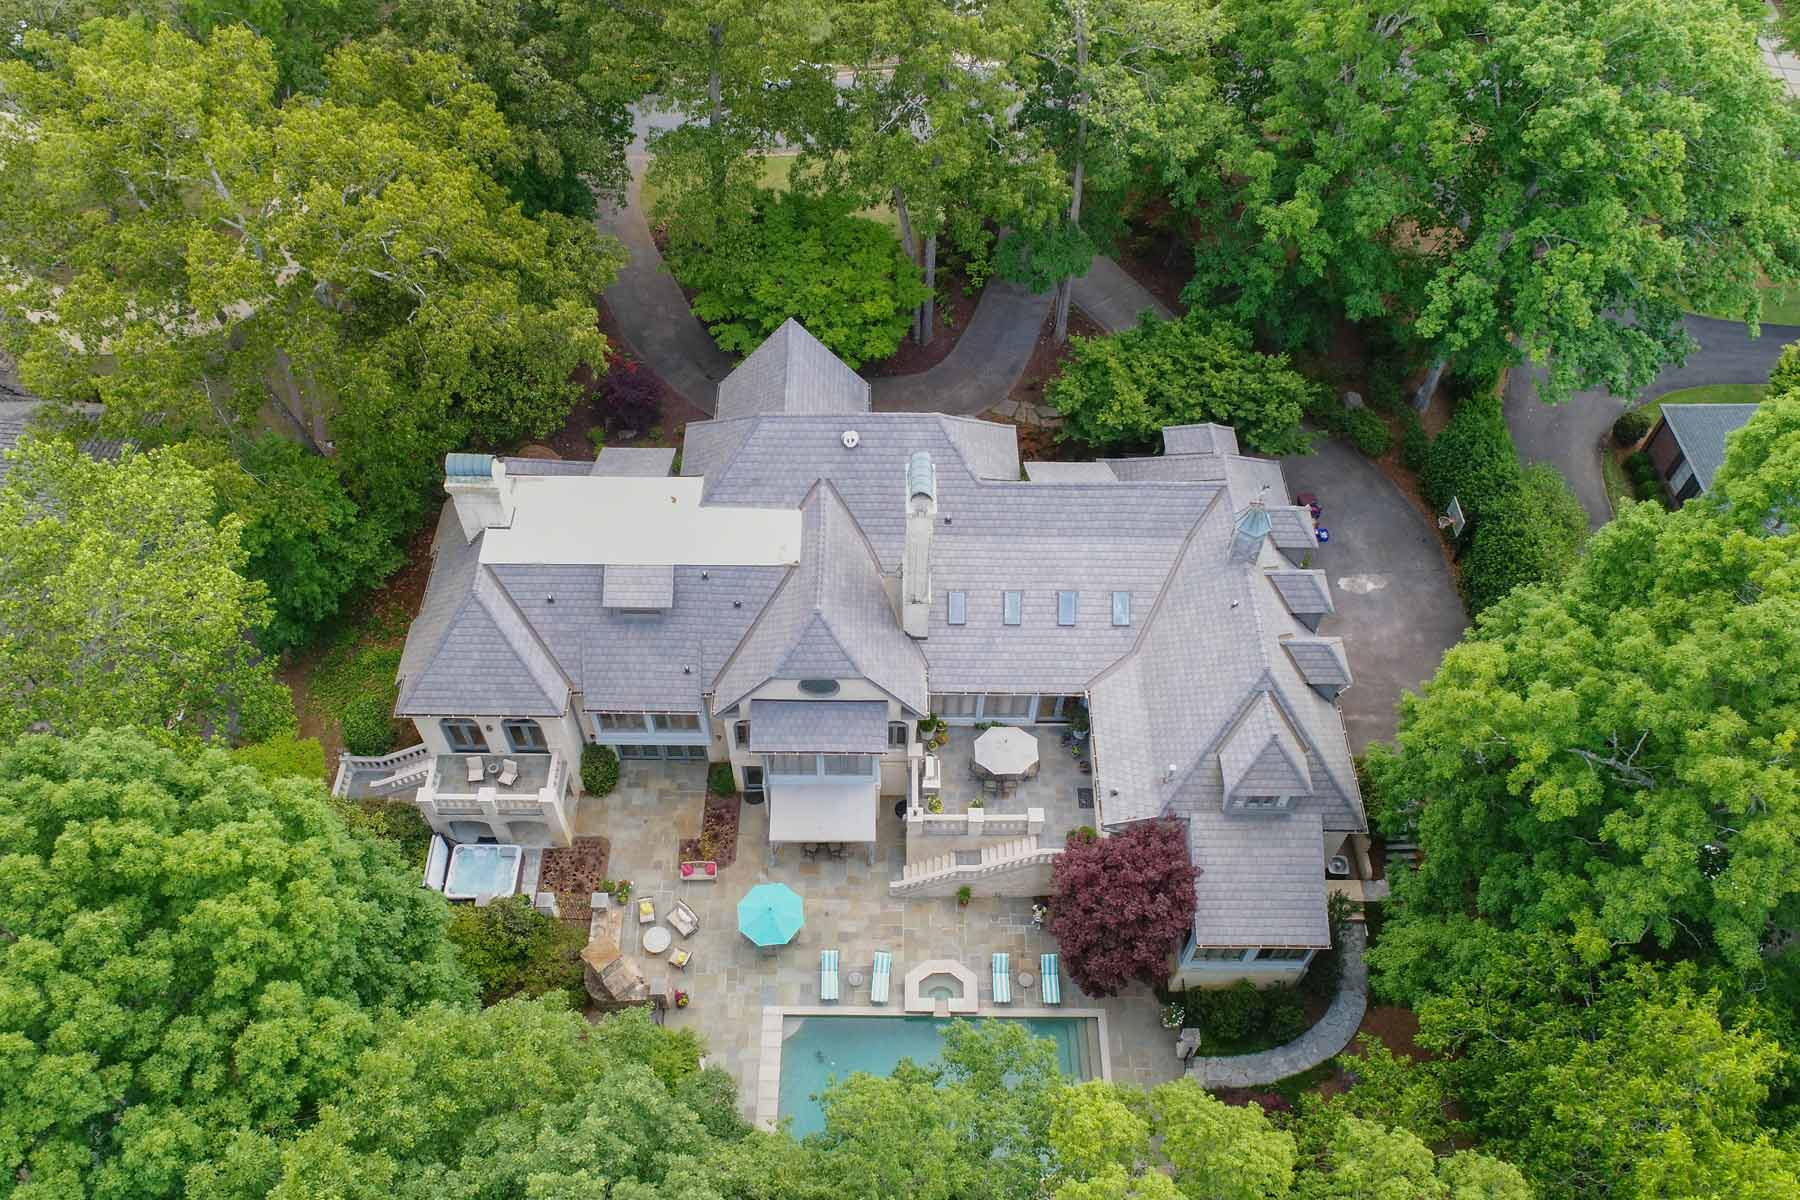 Single Family Home for Sale at Grand European-inspired Estate offering Stunning Golf Course Views 660 Atlanta Country Club Drive SE Marietta, Georgia 30067 United States